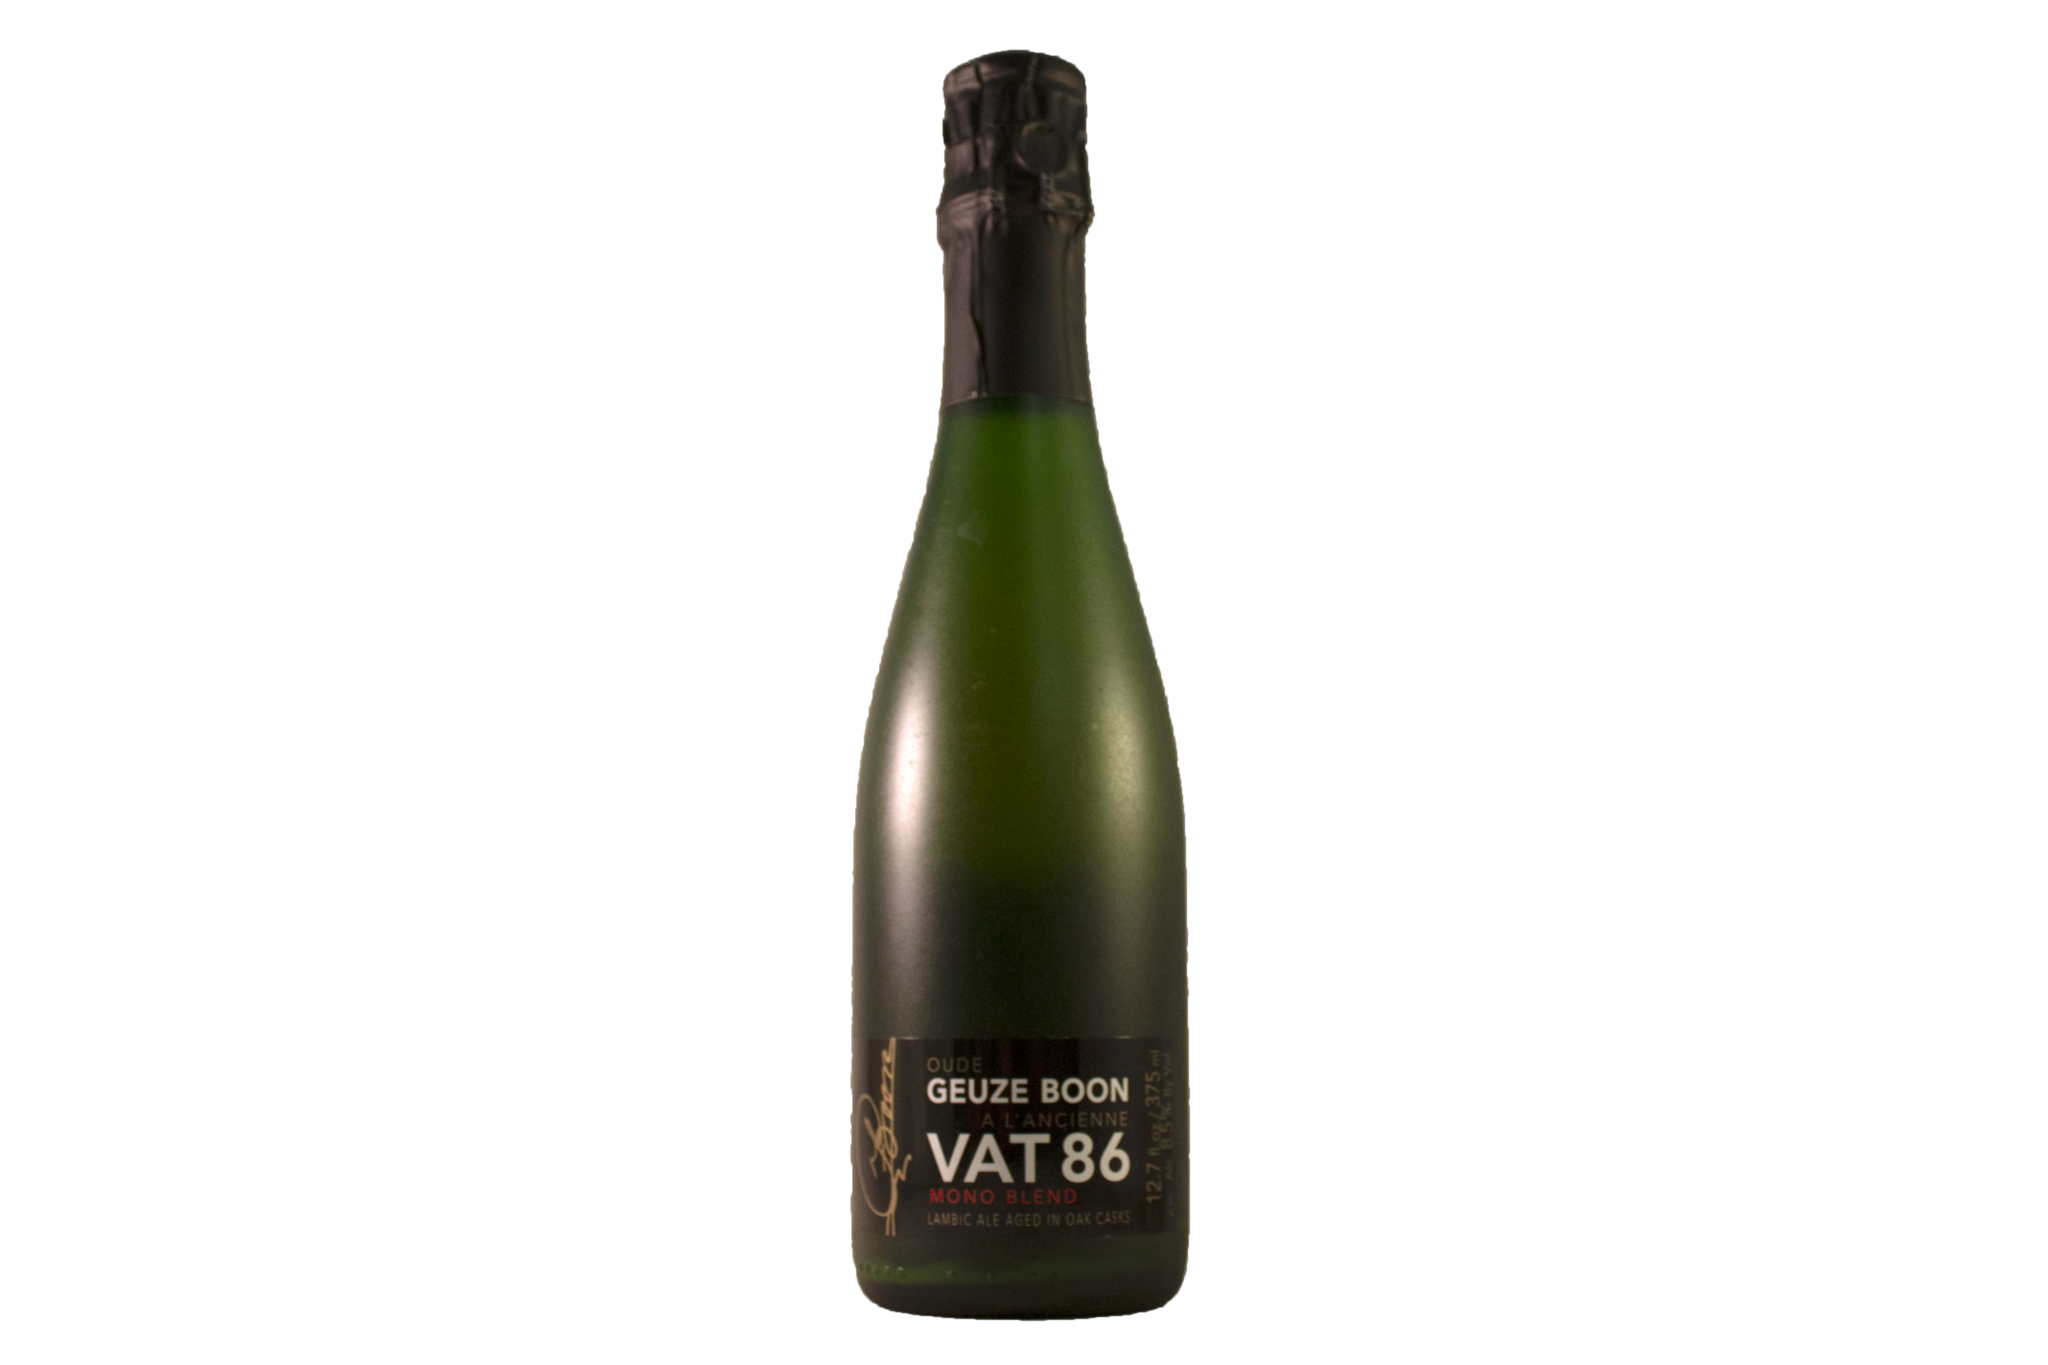 Boon vat 86 37,5cl 8,5 %